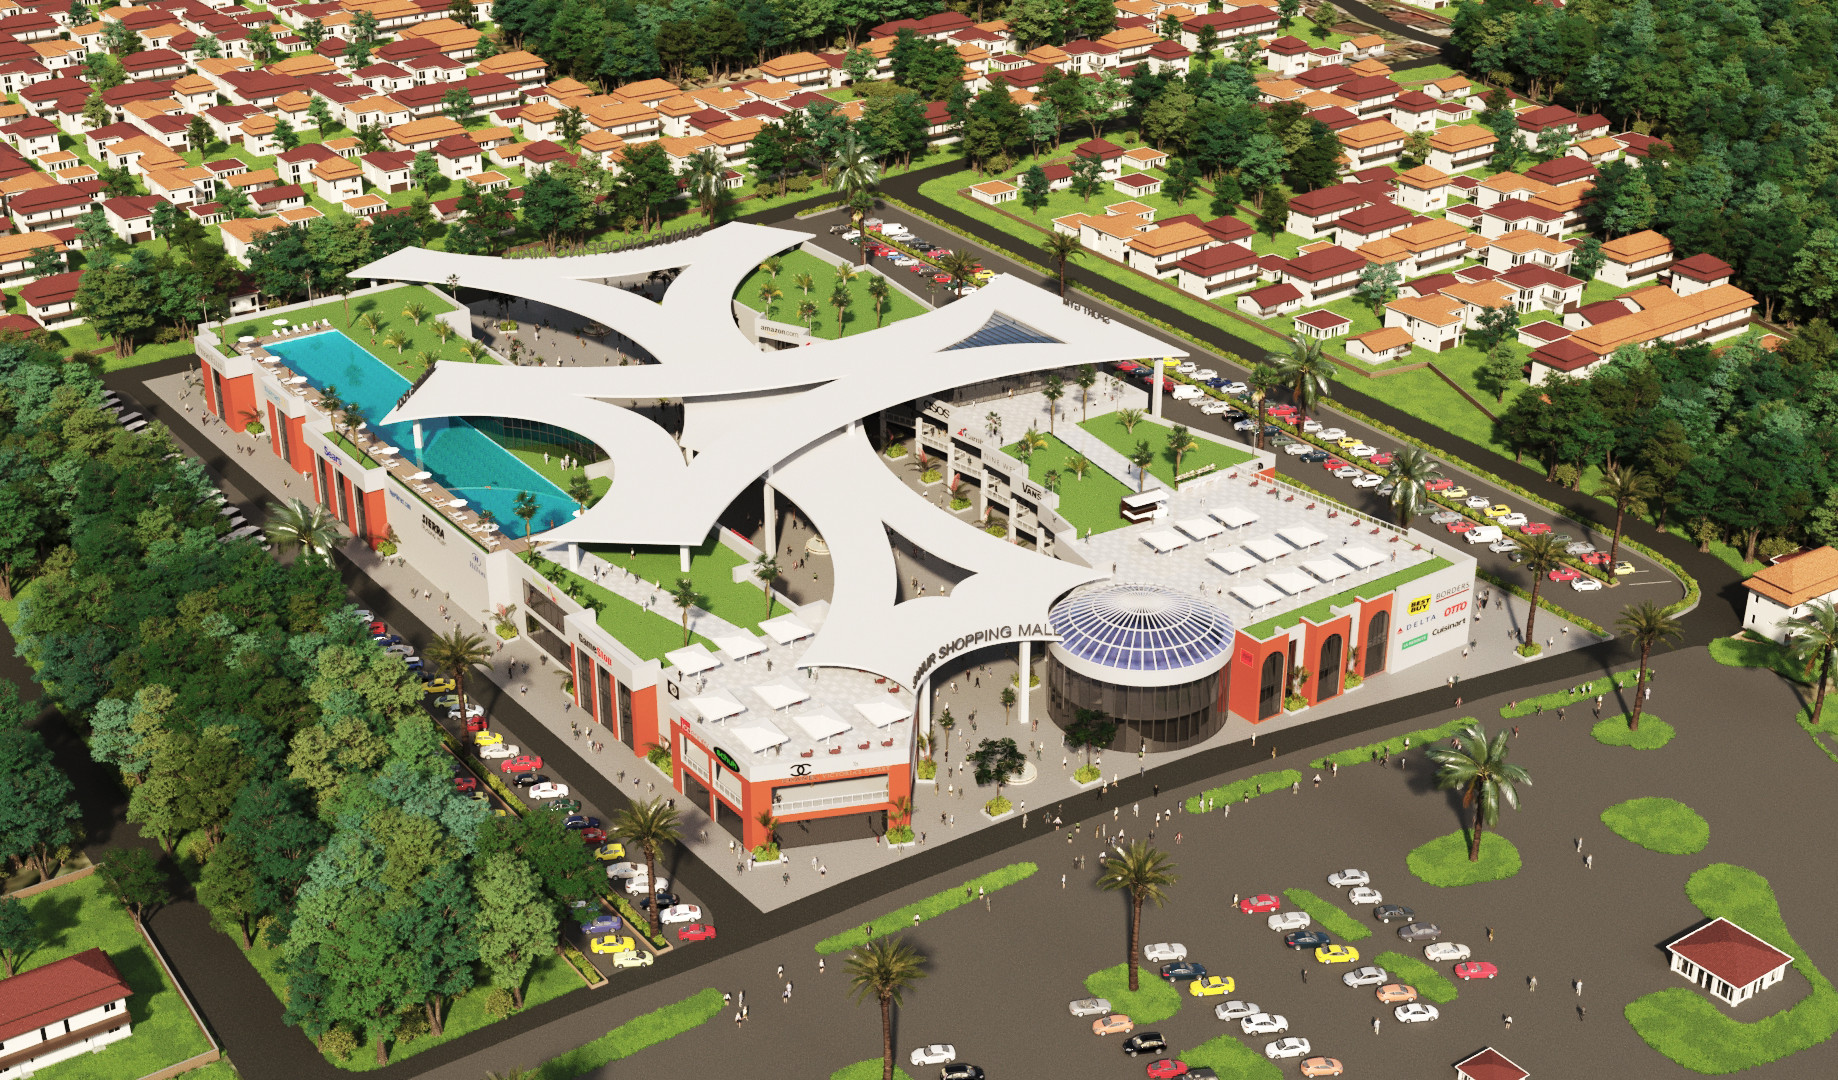 Sanur Shopping Mall